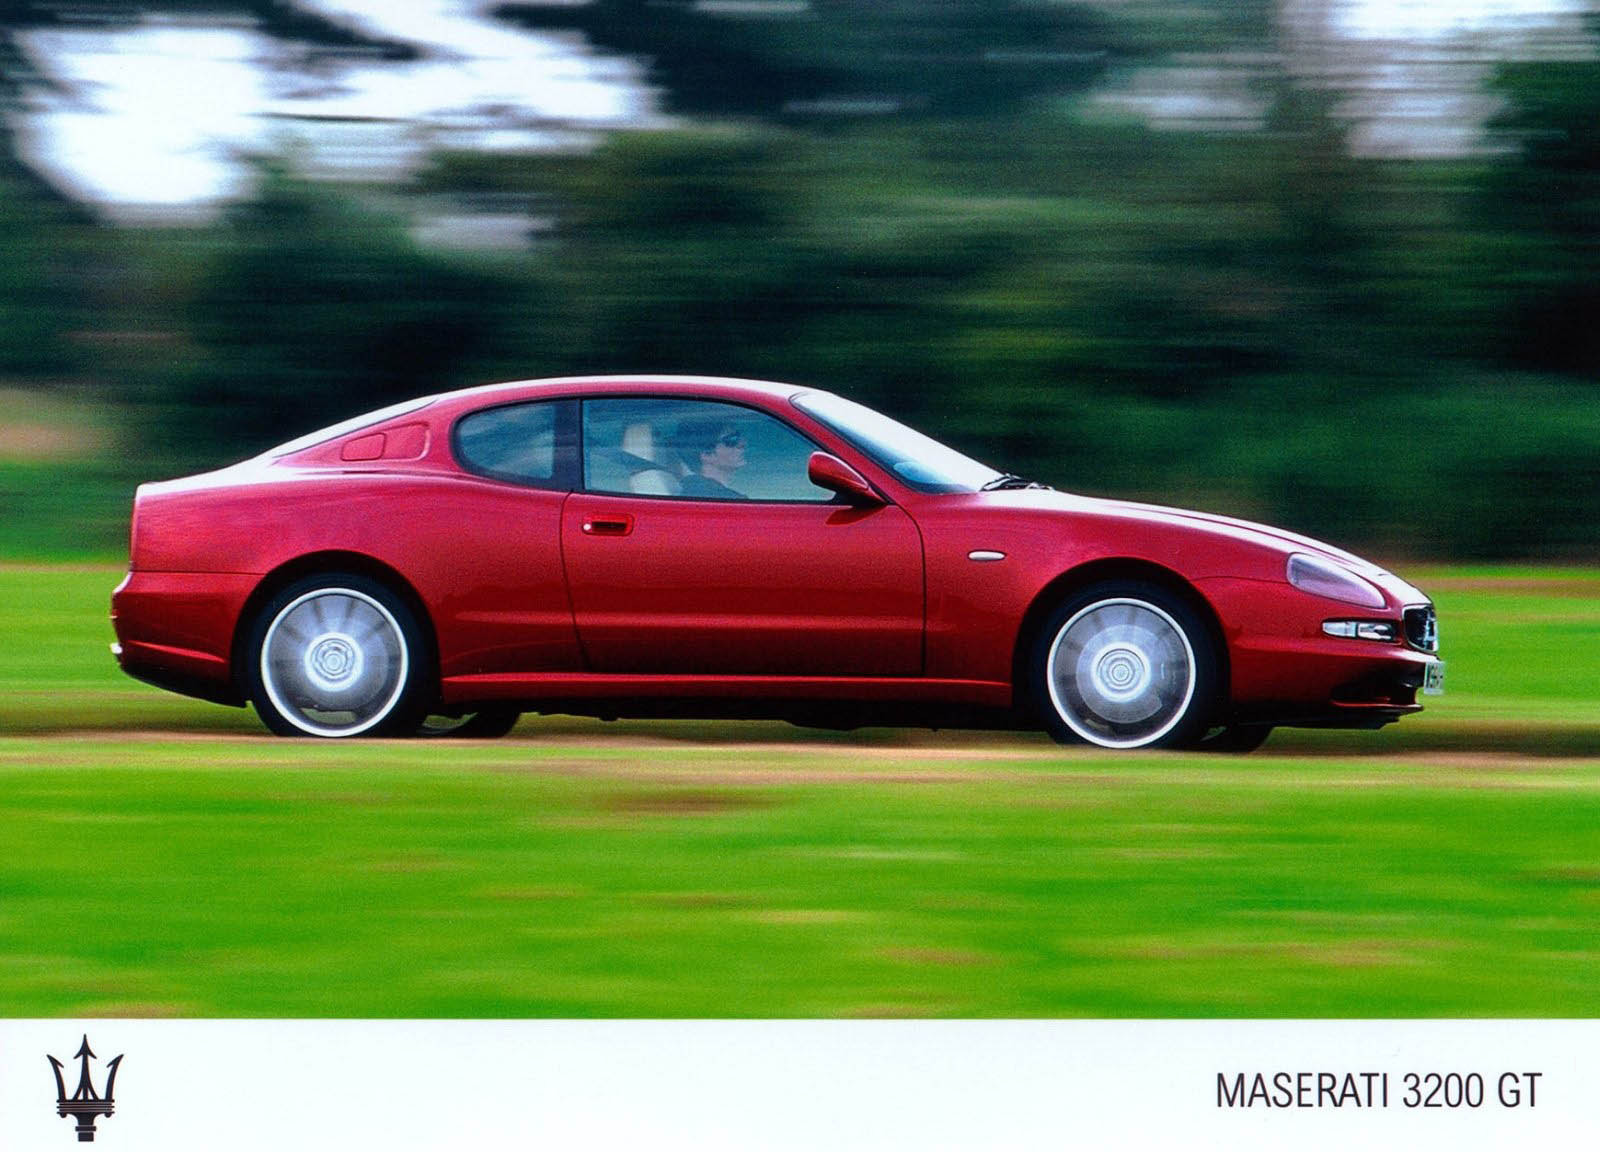 2000 Maserati 3200 GT Review - Top Speed